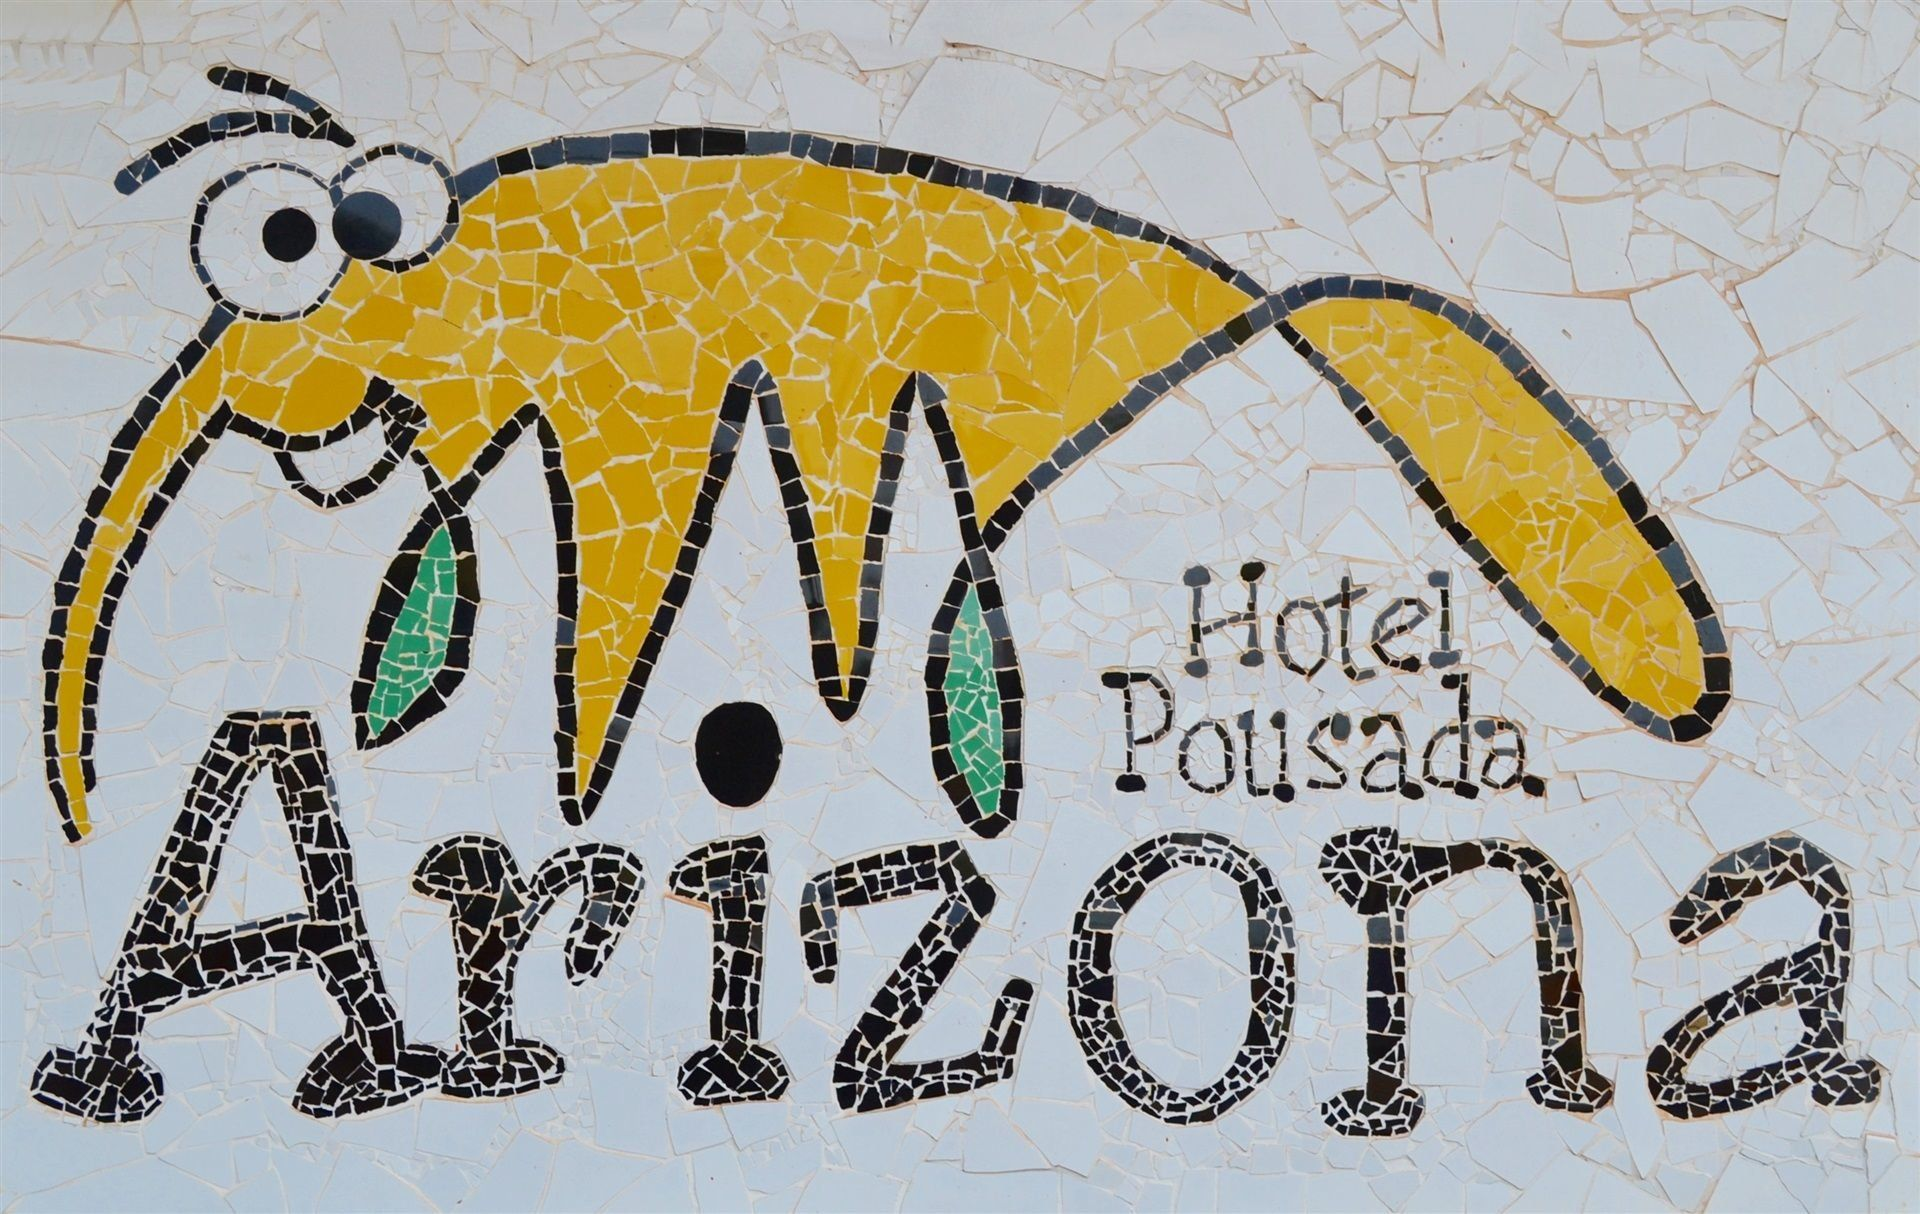 Hotel Pousada Arizona